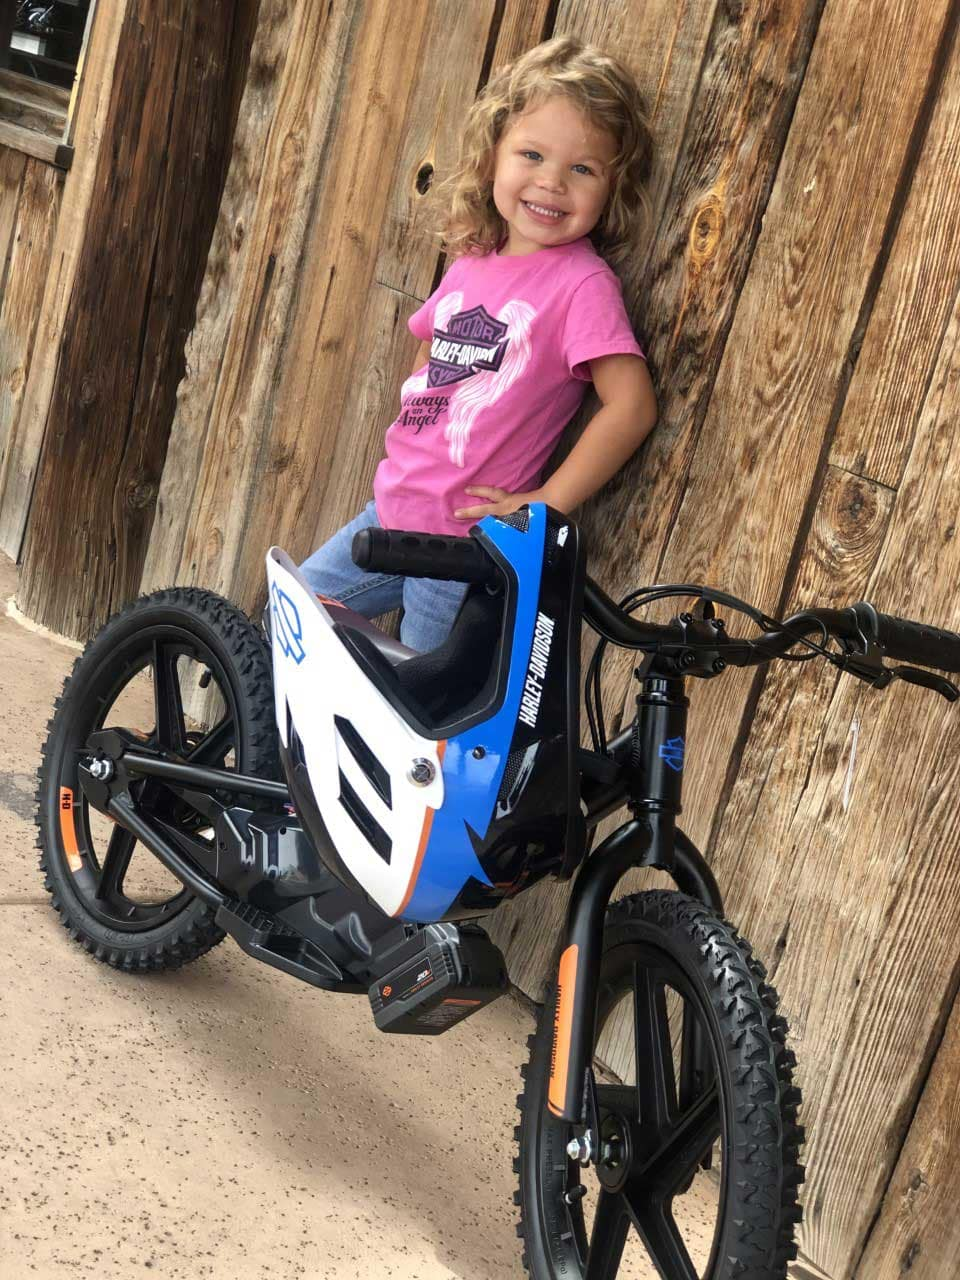 Harley Kids' IRONe Electric Motorcycle Demo Rides Mesa, Arizona